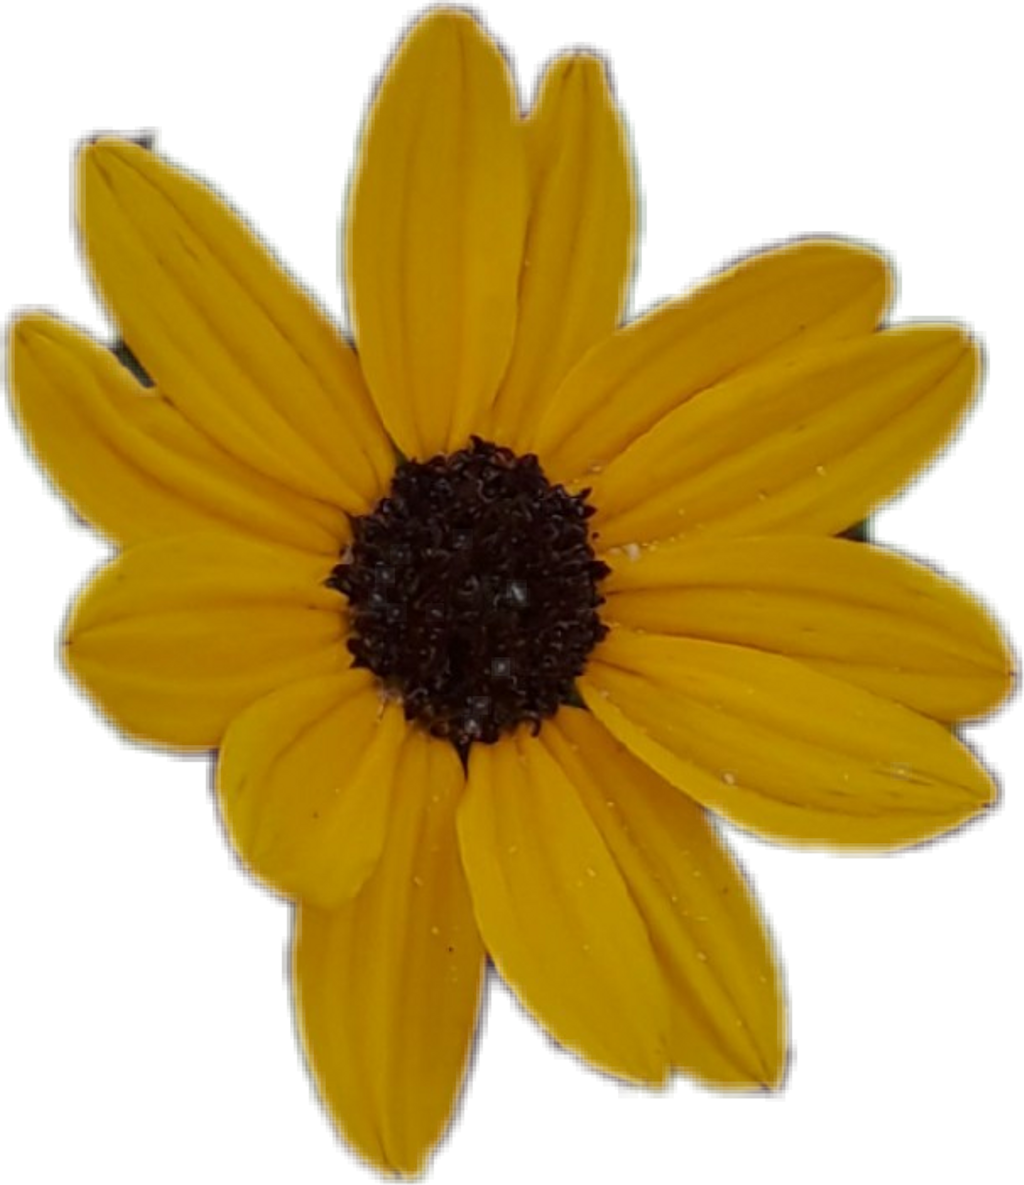 Sunflower png aesthetic. Floral flower yellowaesthetic yello